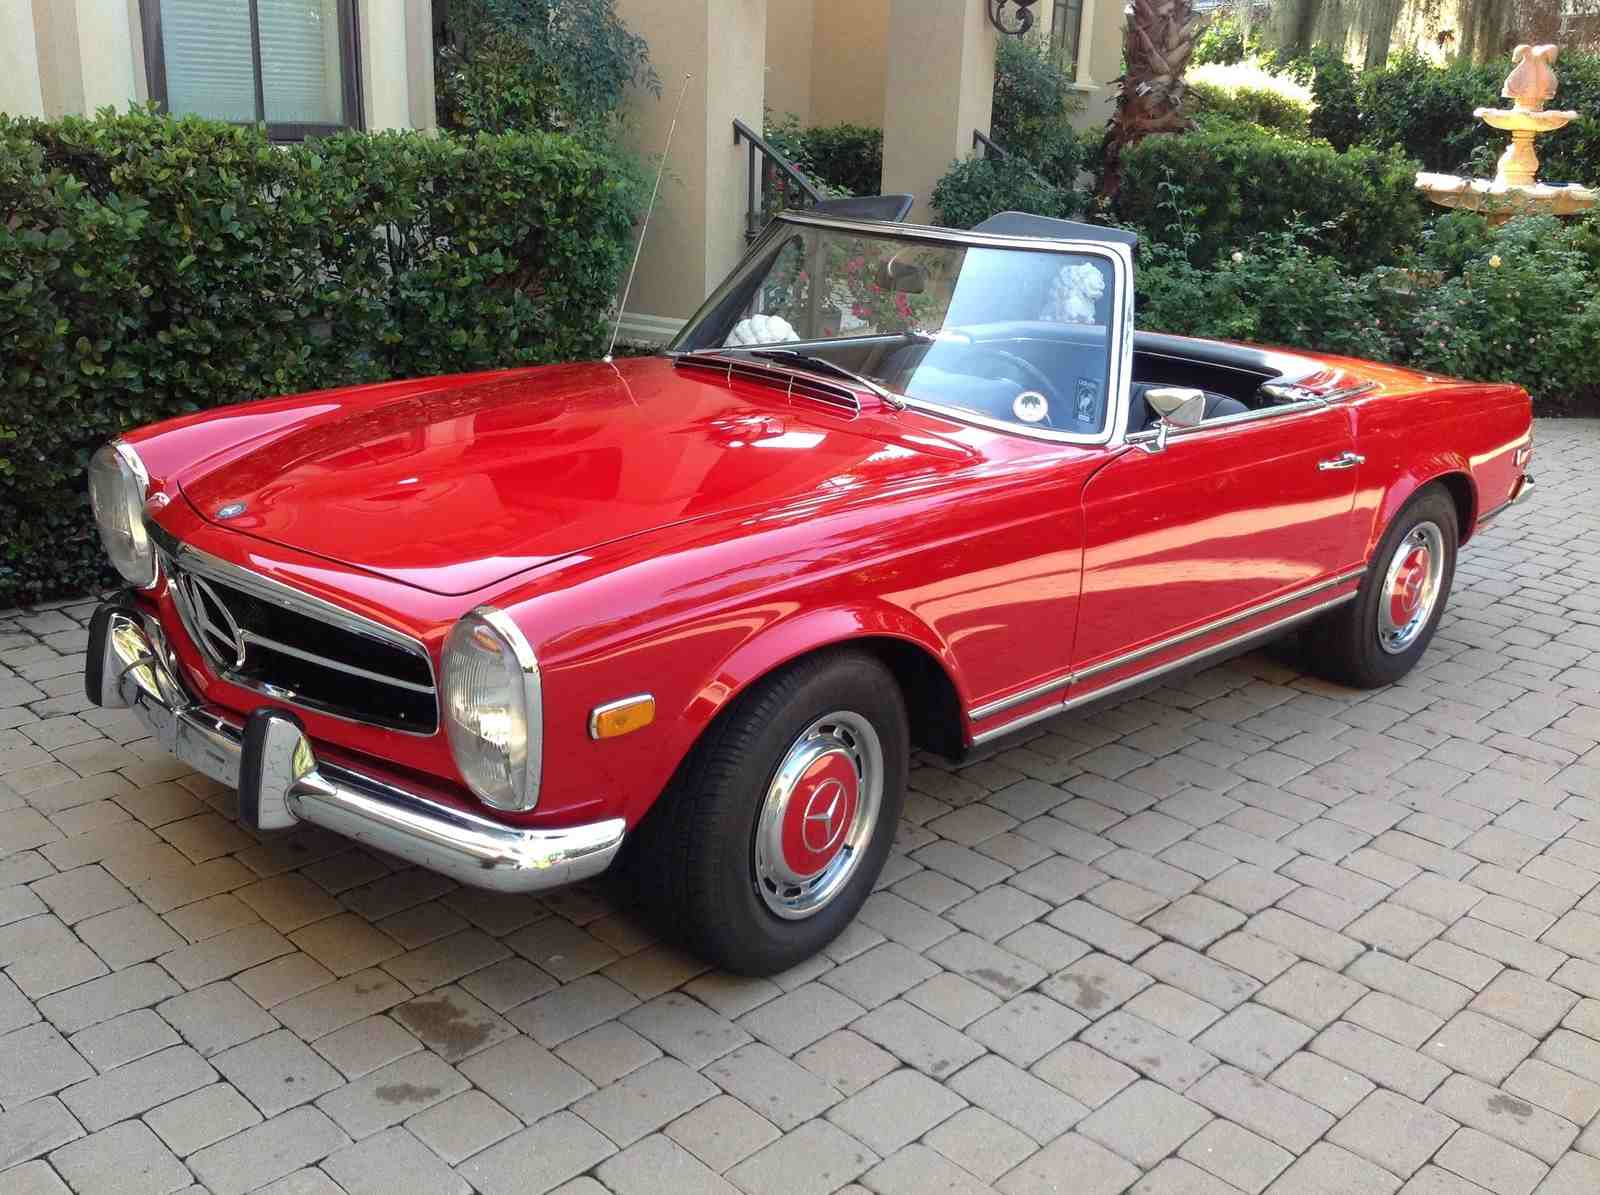 Mercedes Gl E >> 1971 Mercedes-Benz 280 SL Spotted on eBay - BenzInsider.com - A Mercedes-Benz Fan Blog